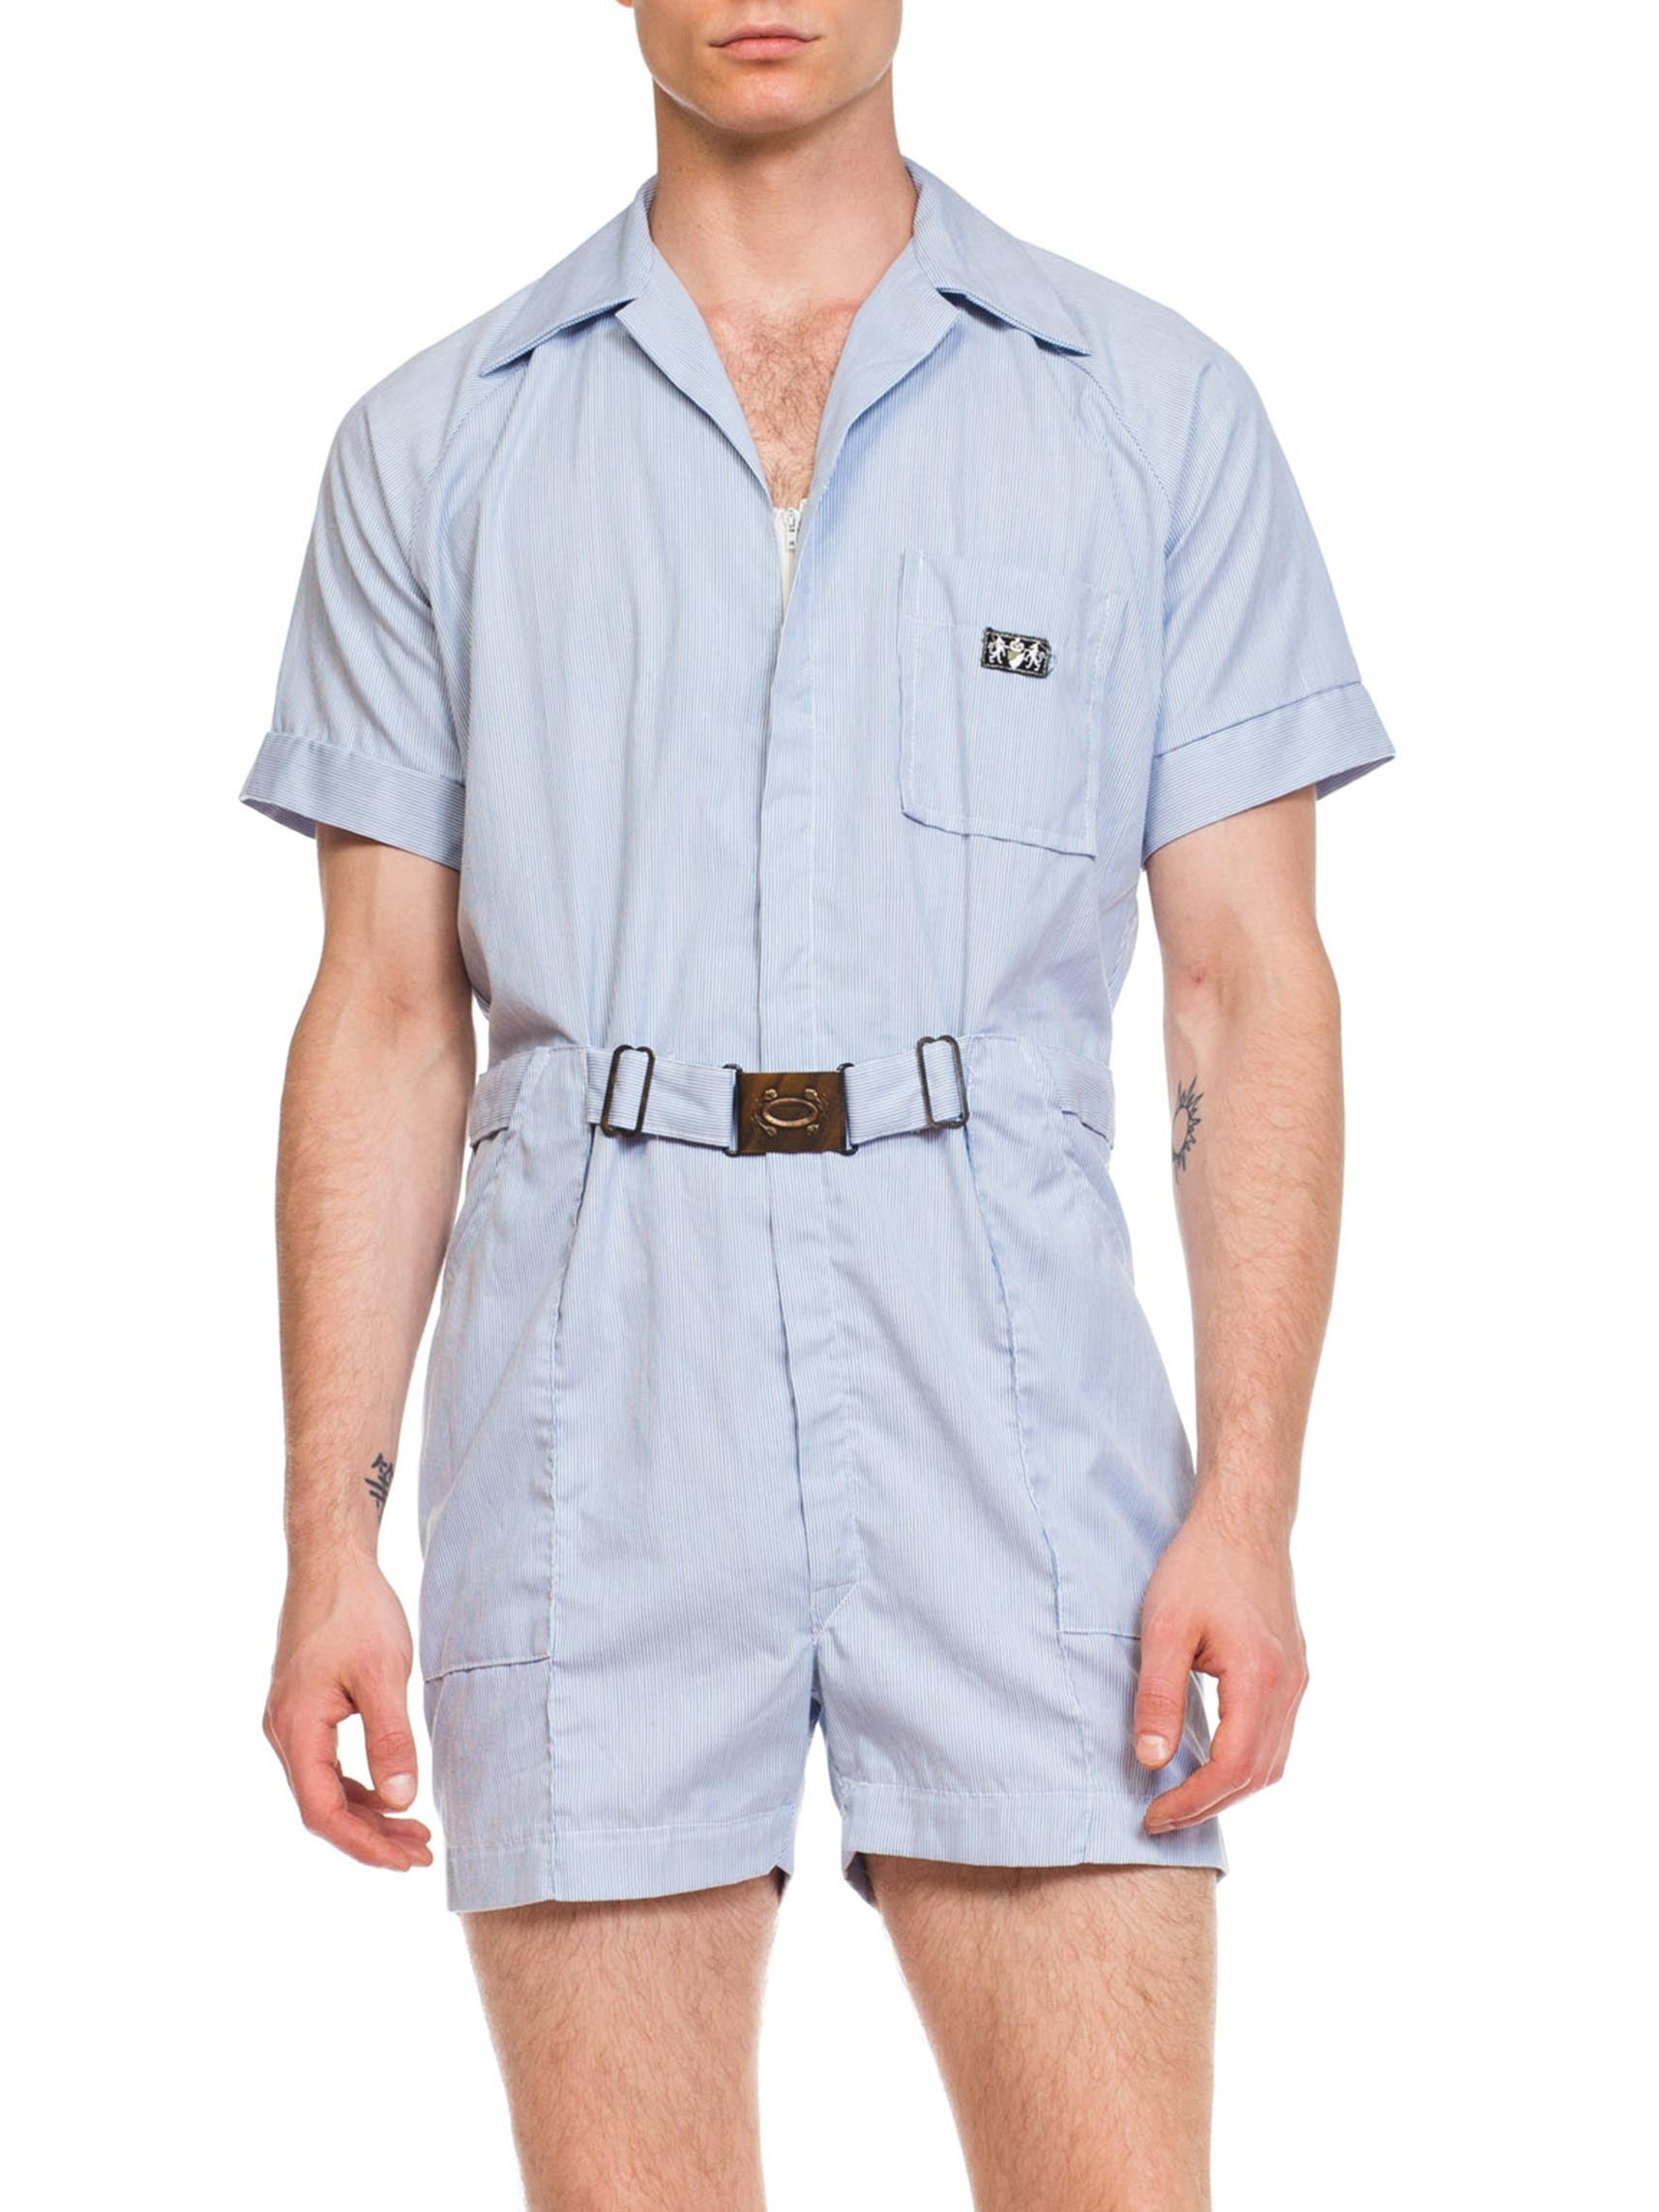 1950s Railroad Stripe Workwear Short Jumpsuit Romper